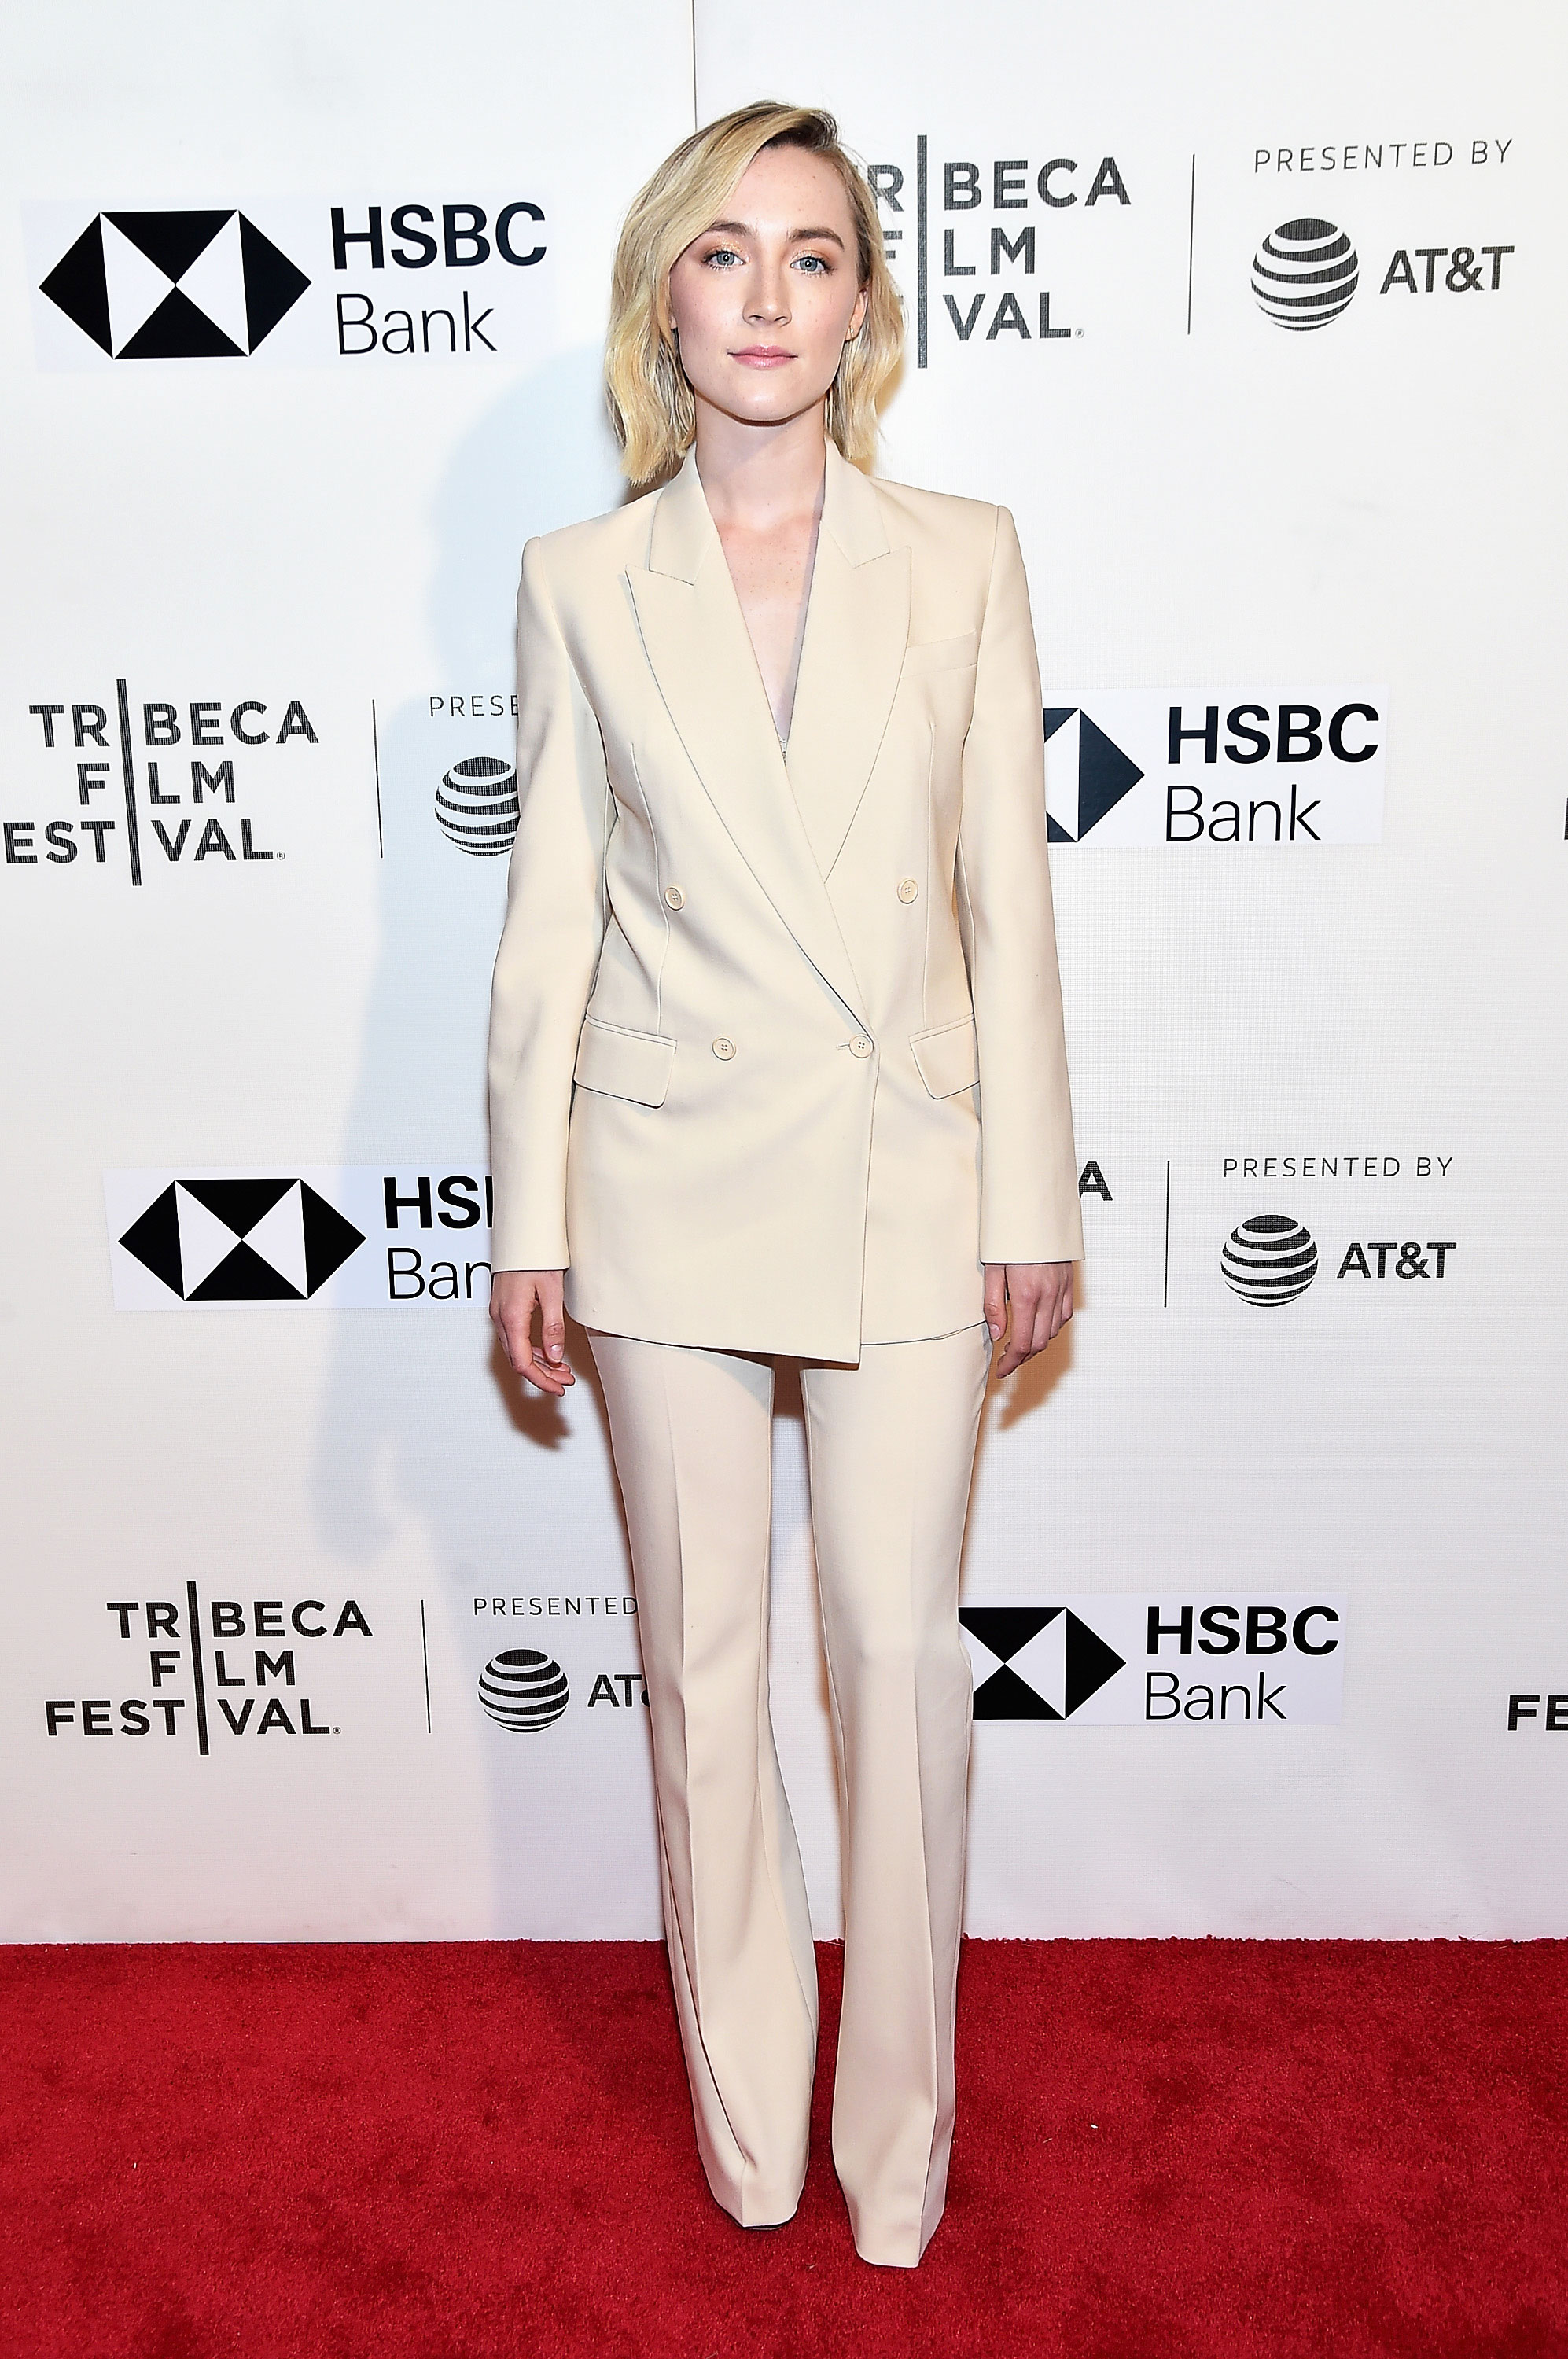 Saoirse Ronan in a white suit - Saoirse Ronan Net Worth, Movies, Family, Boyfriend, Pictures and Wallpapers